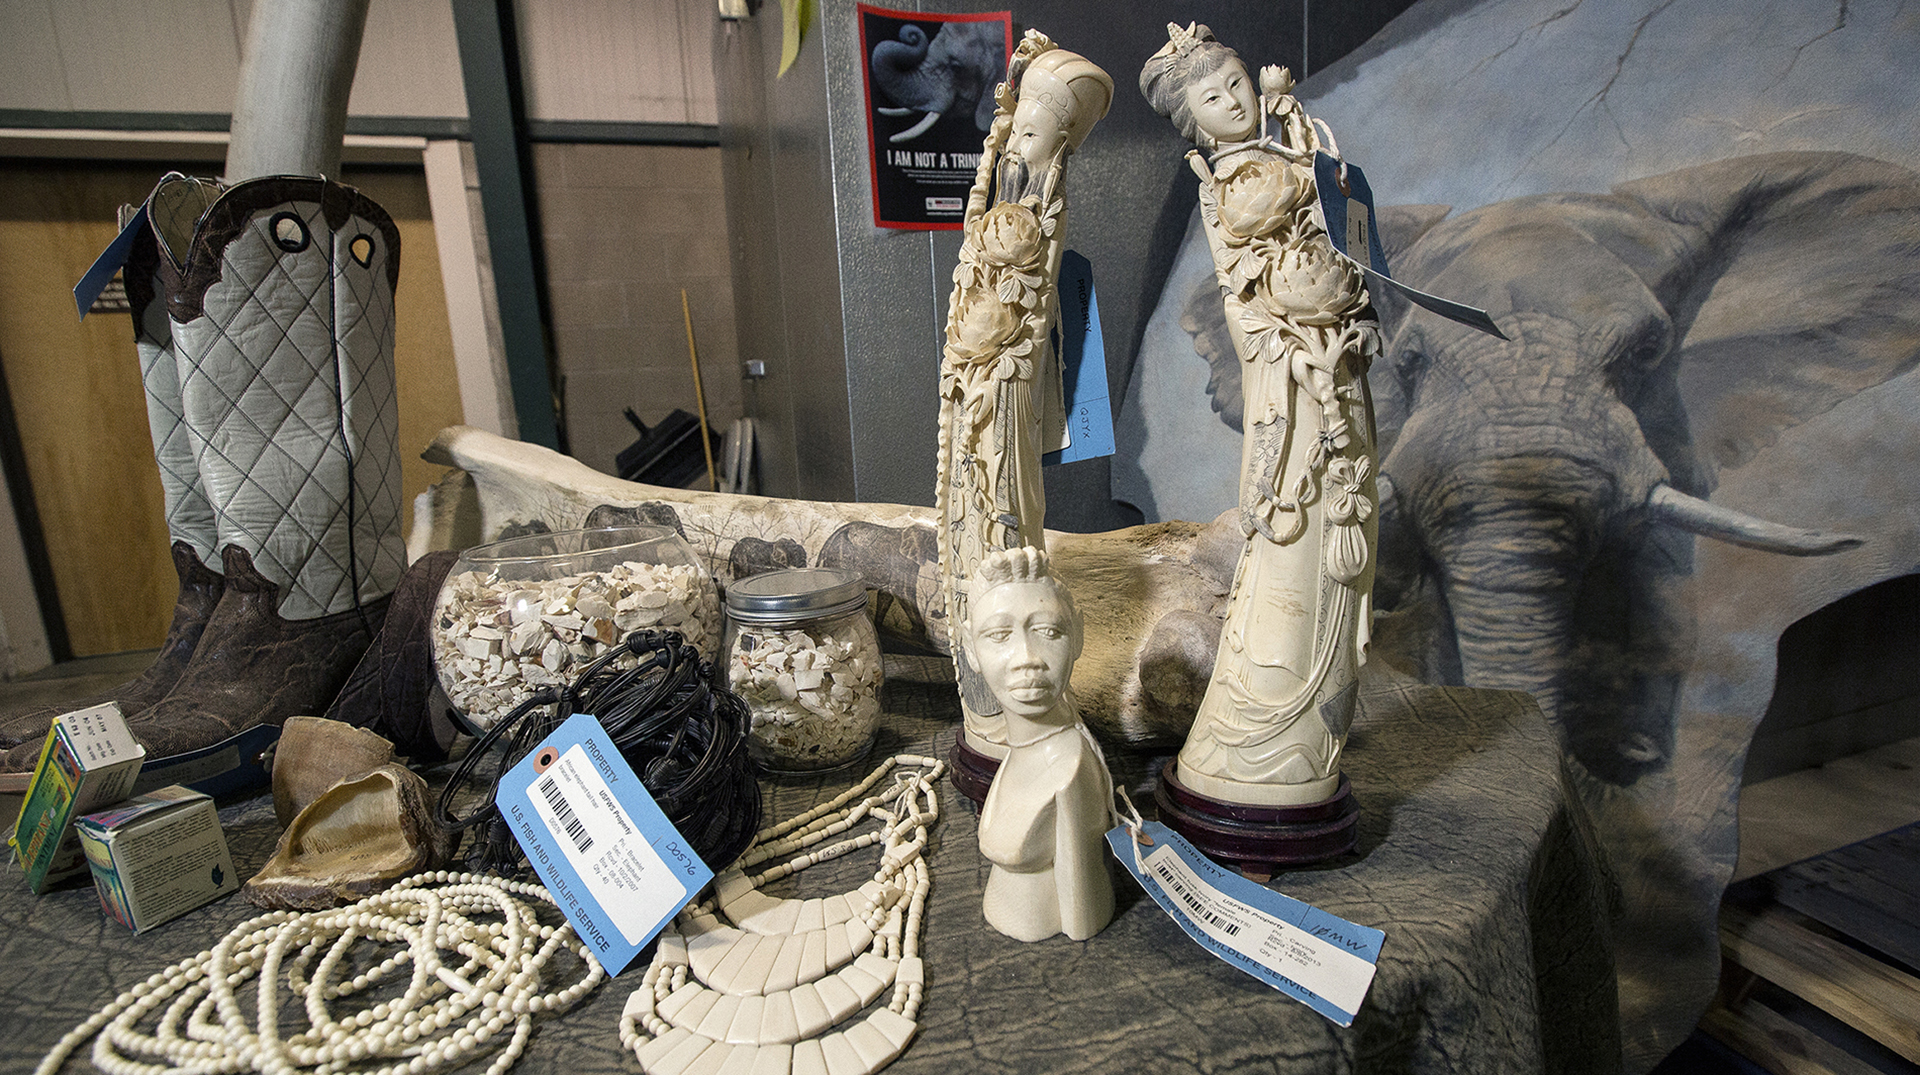 A pile of confiscated items with tags on them in including ornate objects made of ivory.